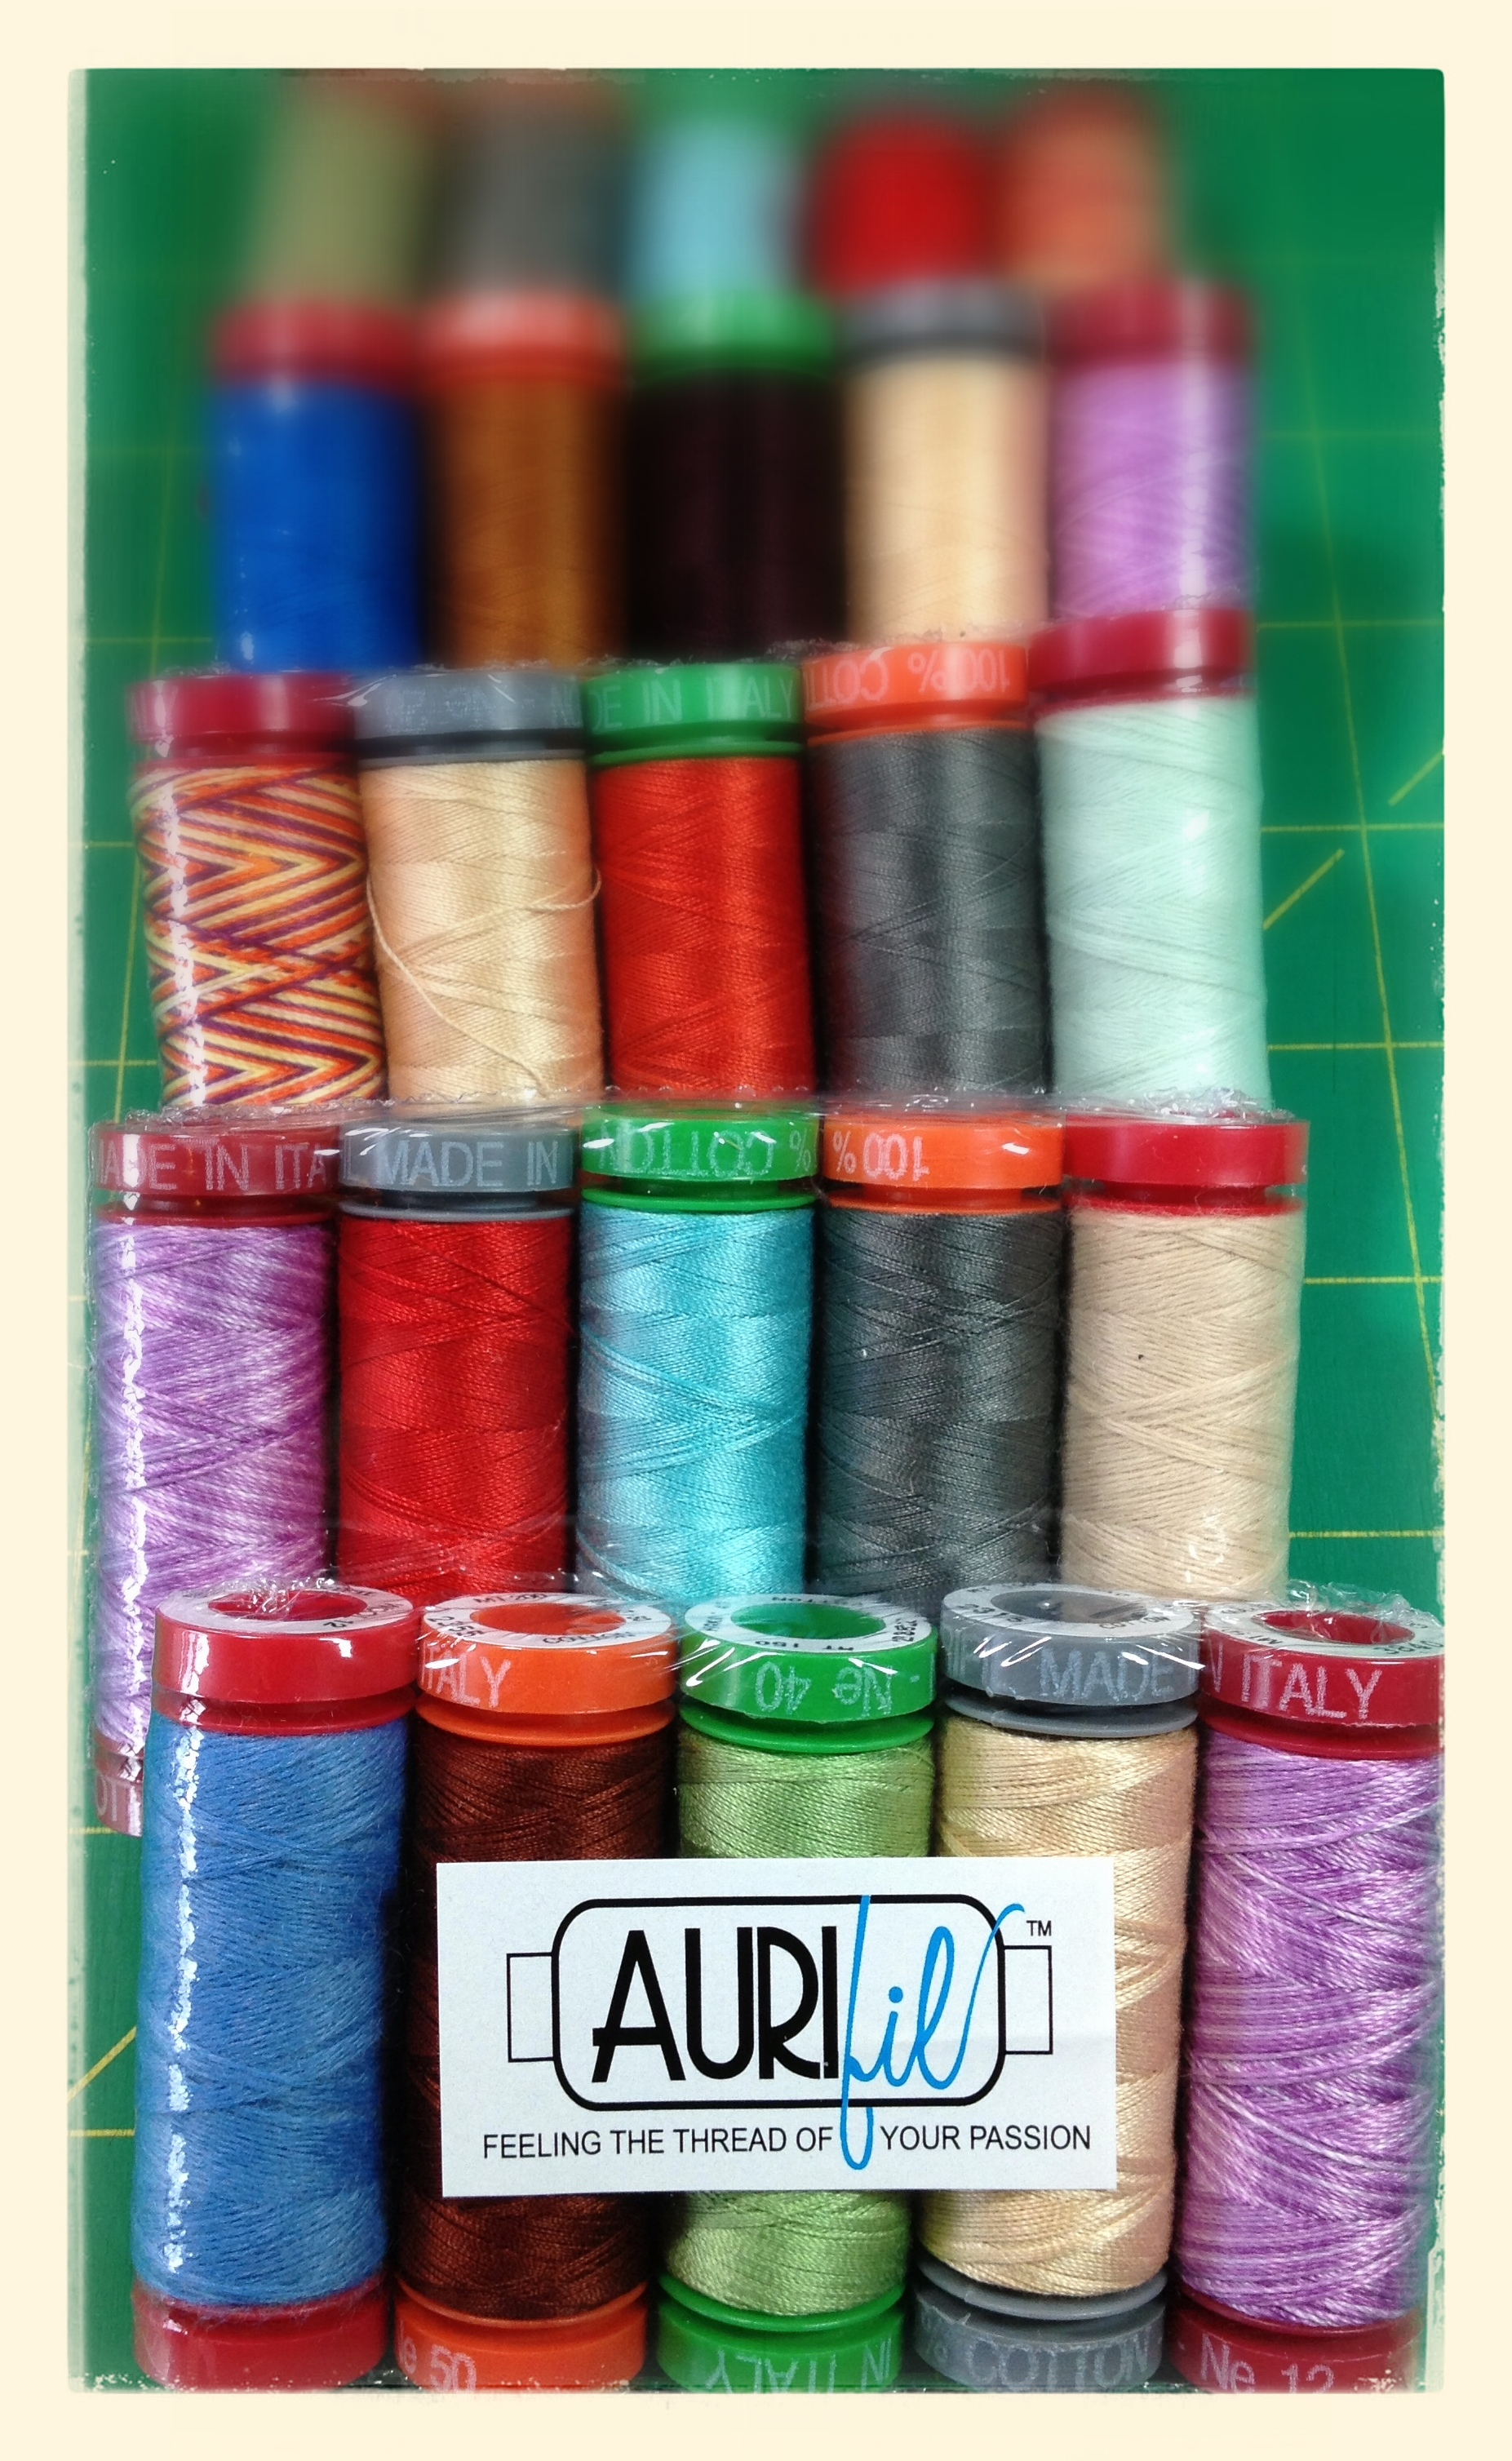 Aurifil sampler packs: 5 spools of thread in each, varying types and colors.